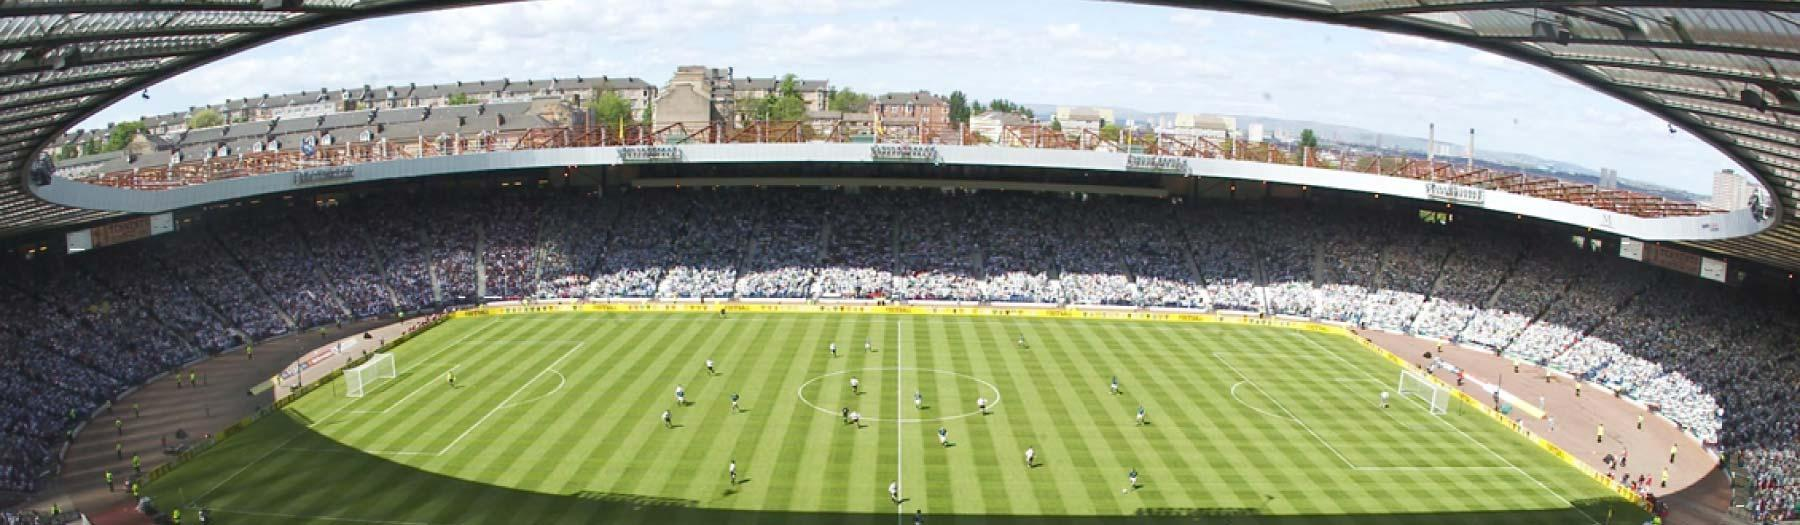 Image: Hampden Park, Glasgow. Credit: Image republished with kind permission of Greater City Marketing Bureau.